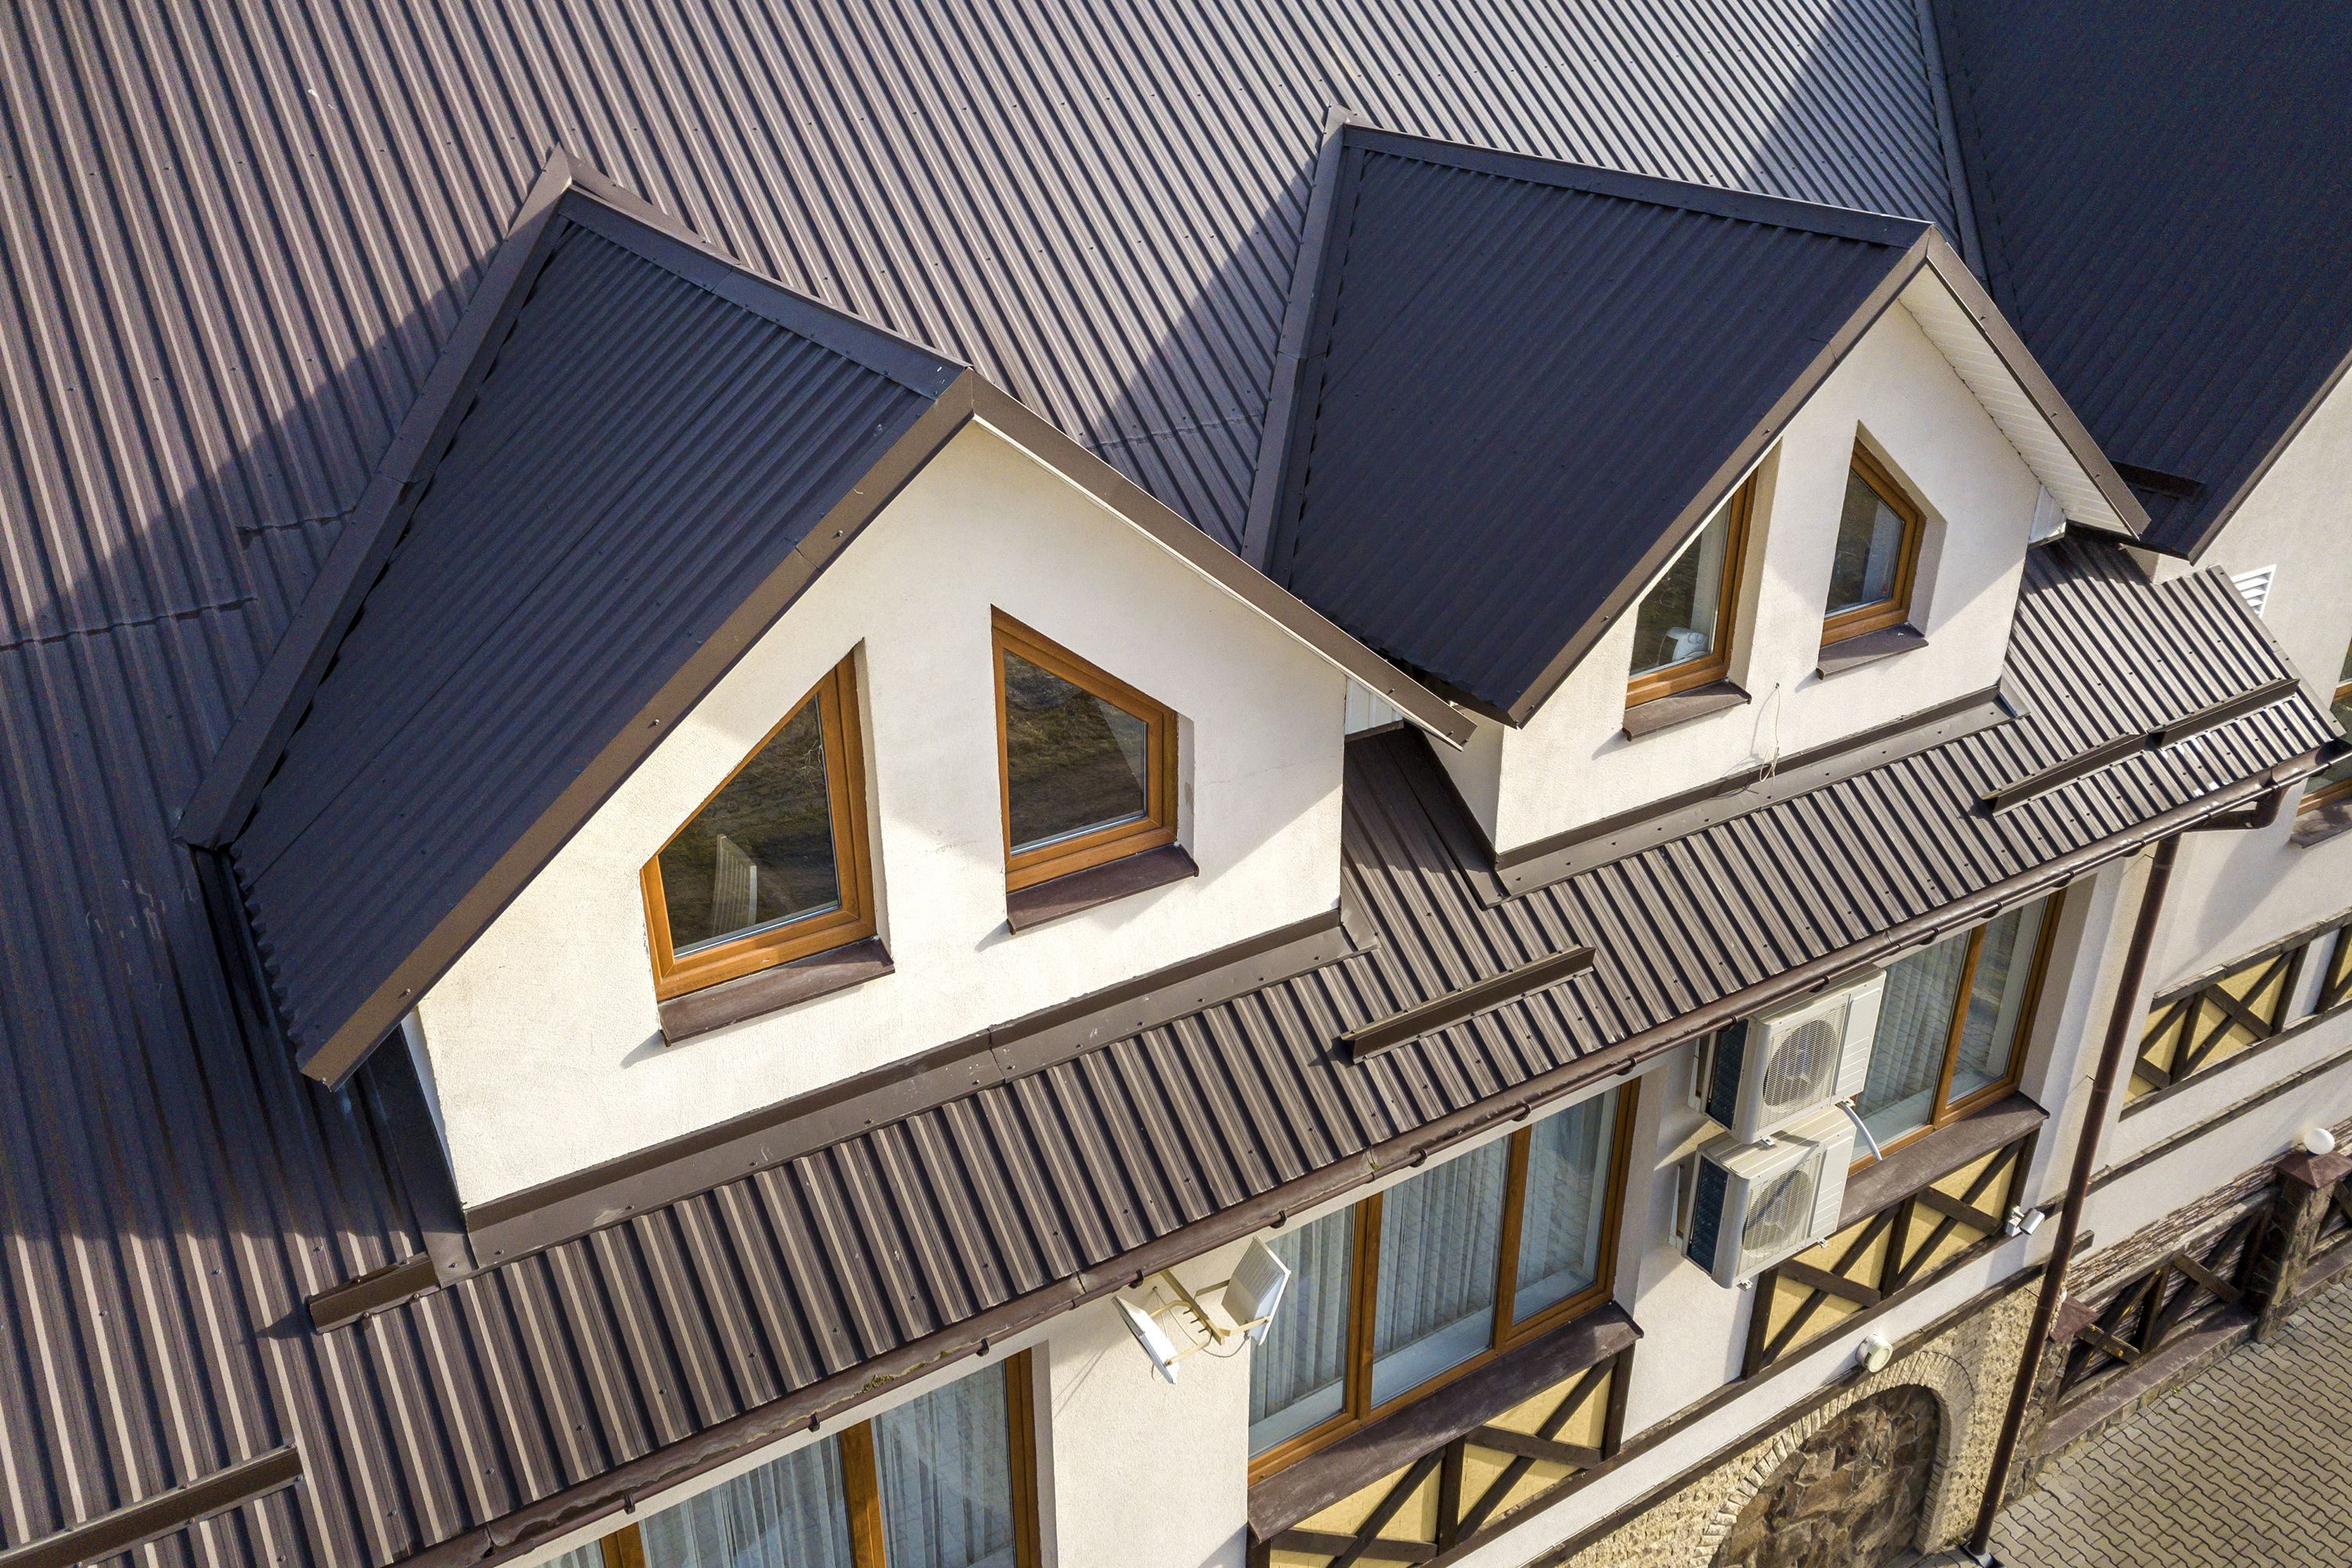 12 Things To Know About Metal Roofing